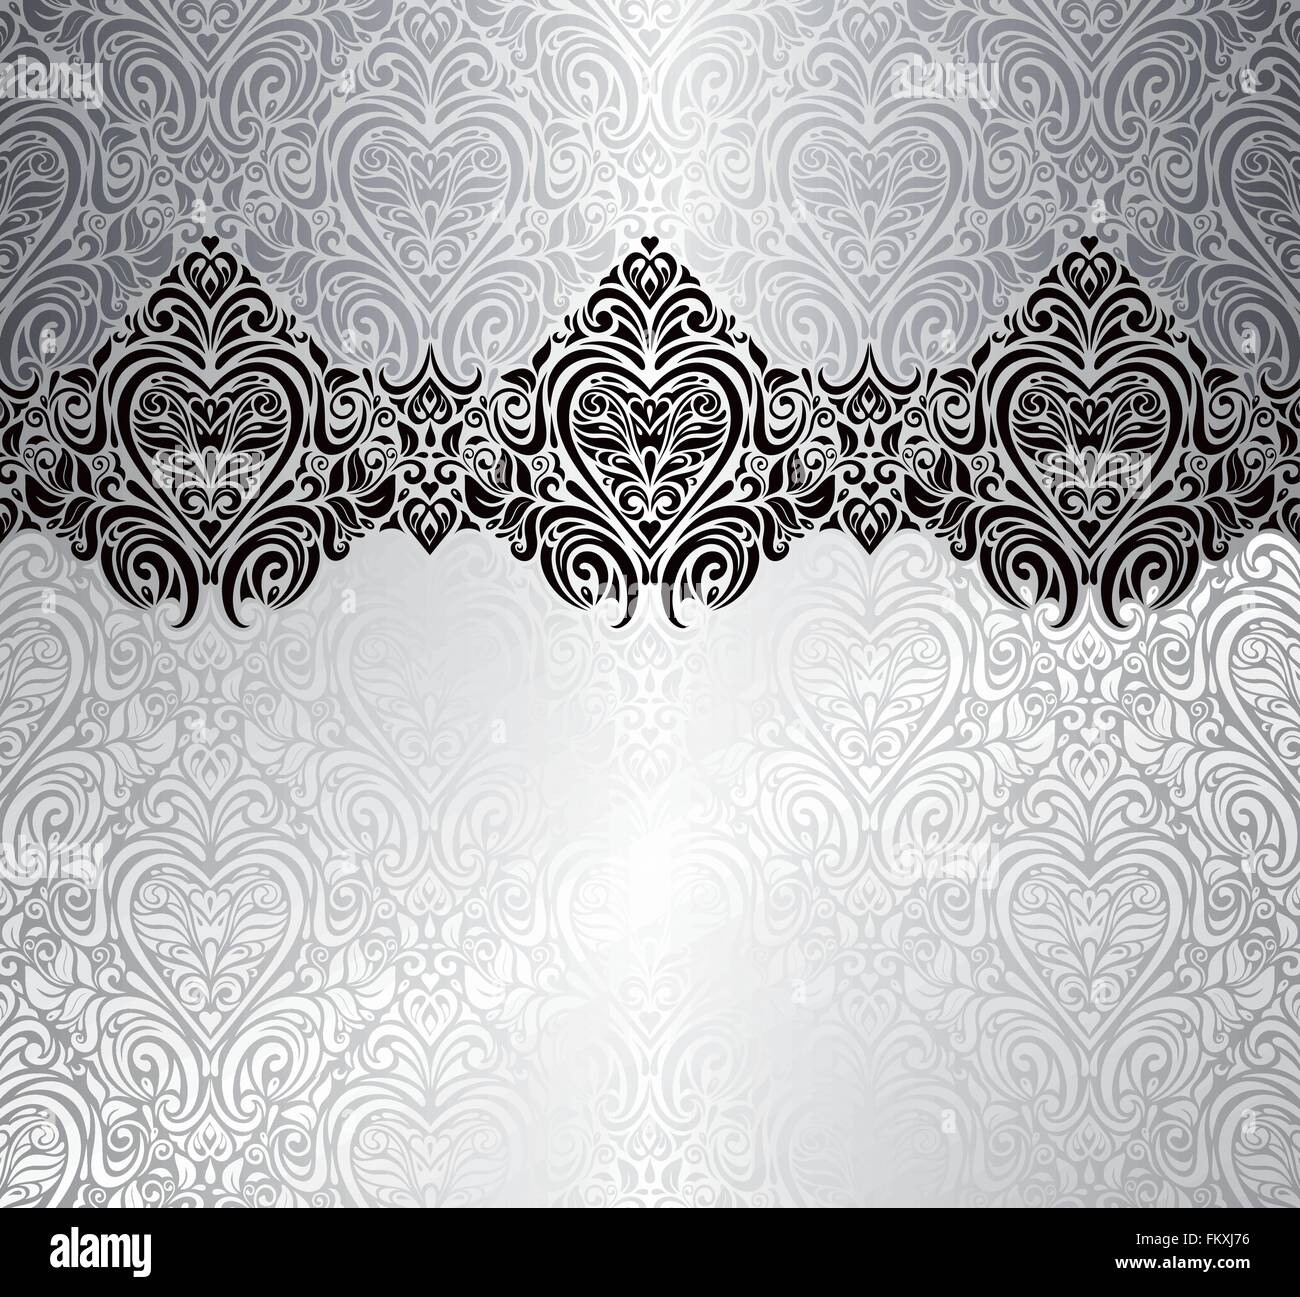 silver fashionable invitation vintage background design with hearts